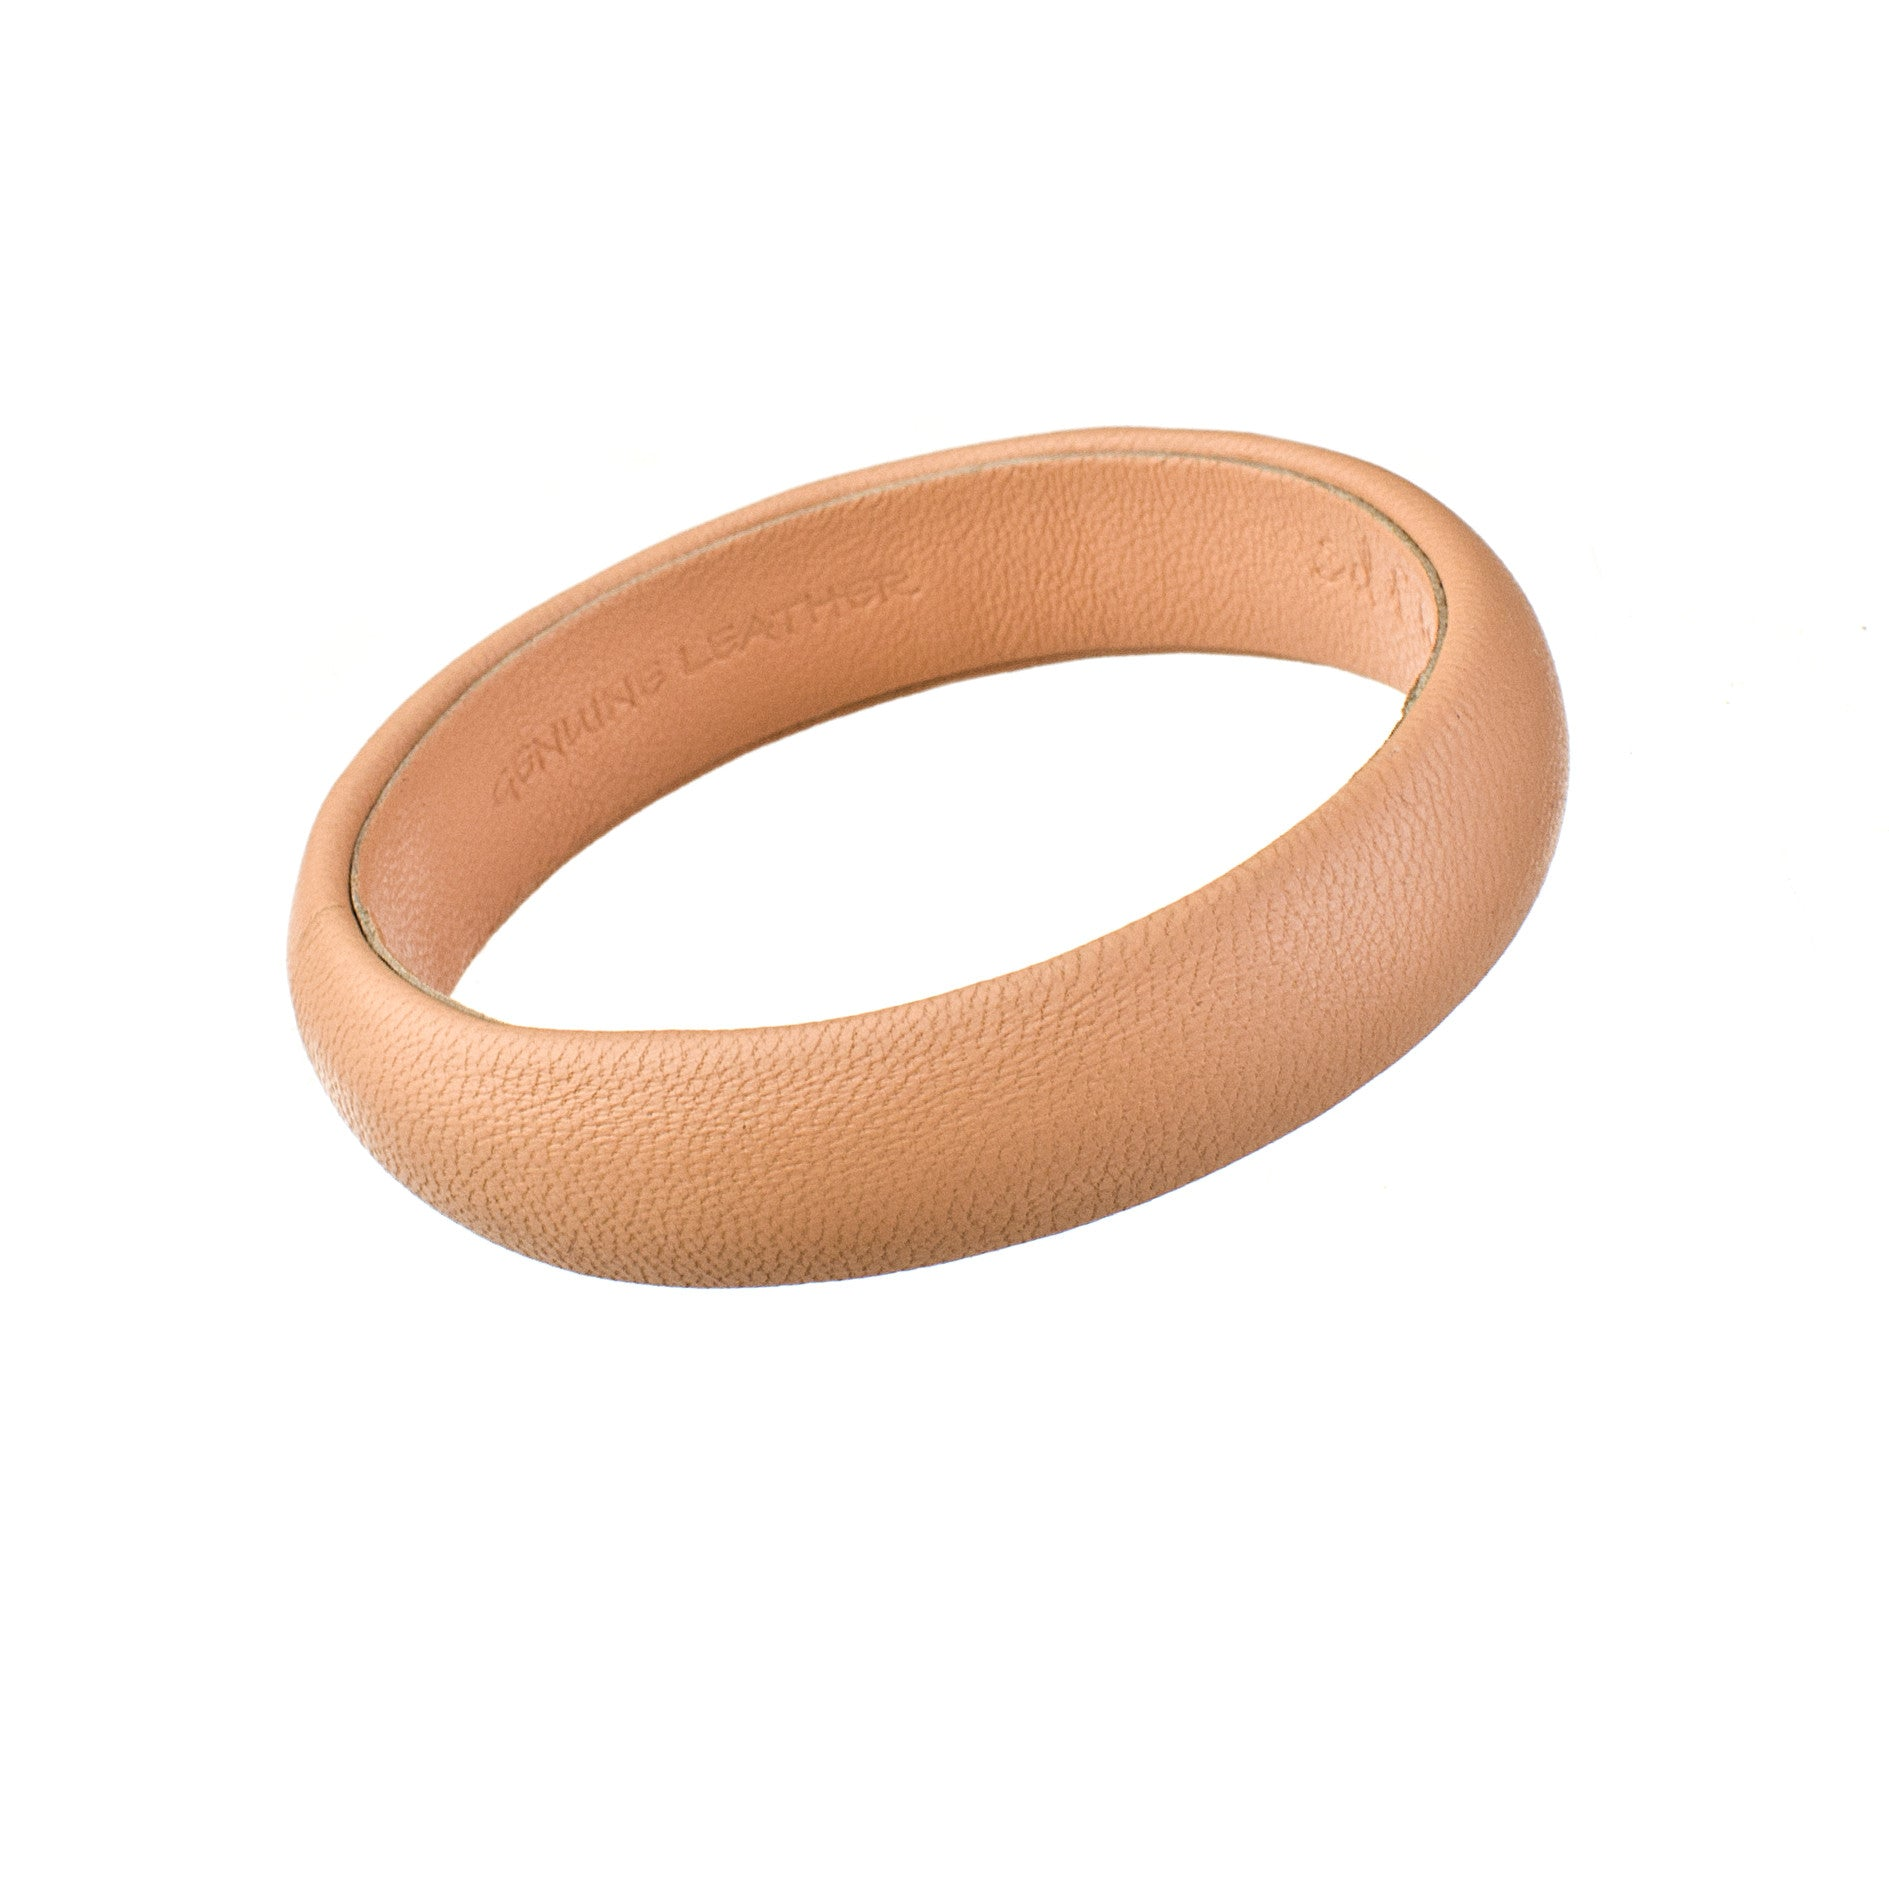 Nude Peach Narrow Leather Bangle Bracelet sd1Twenty5 single